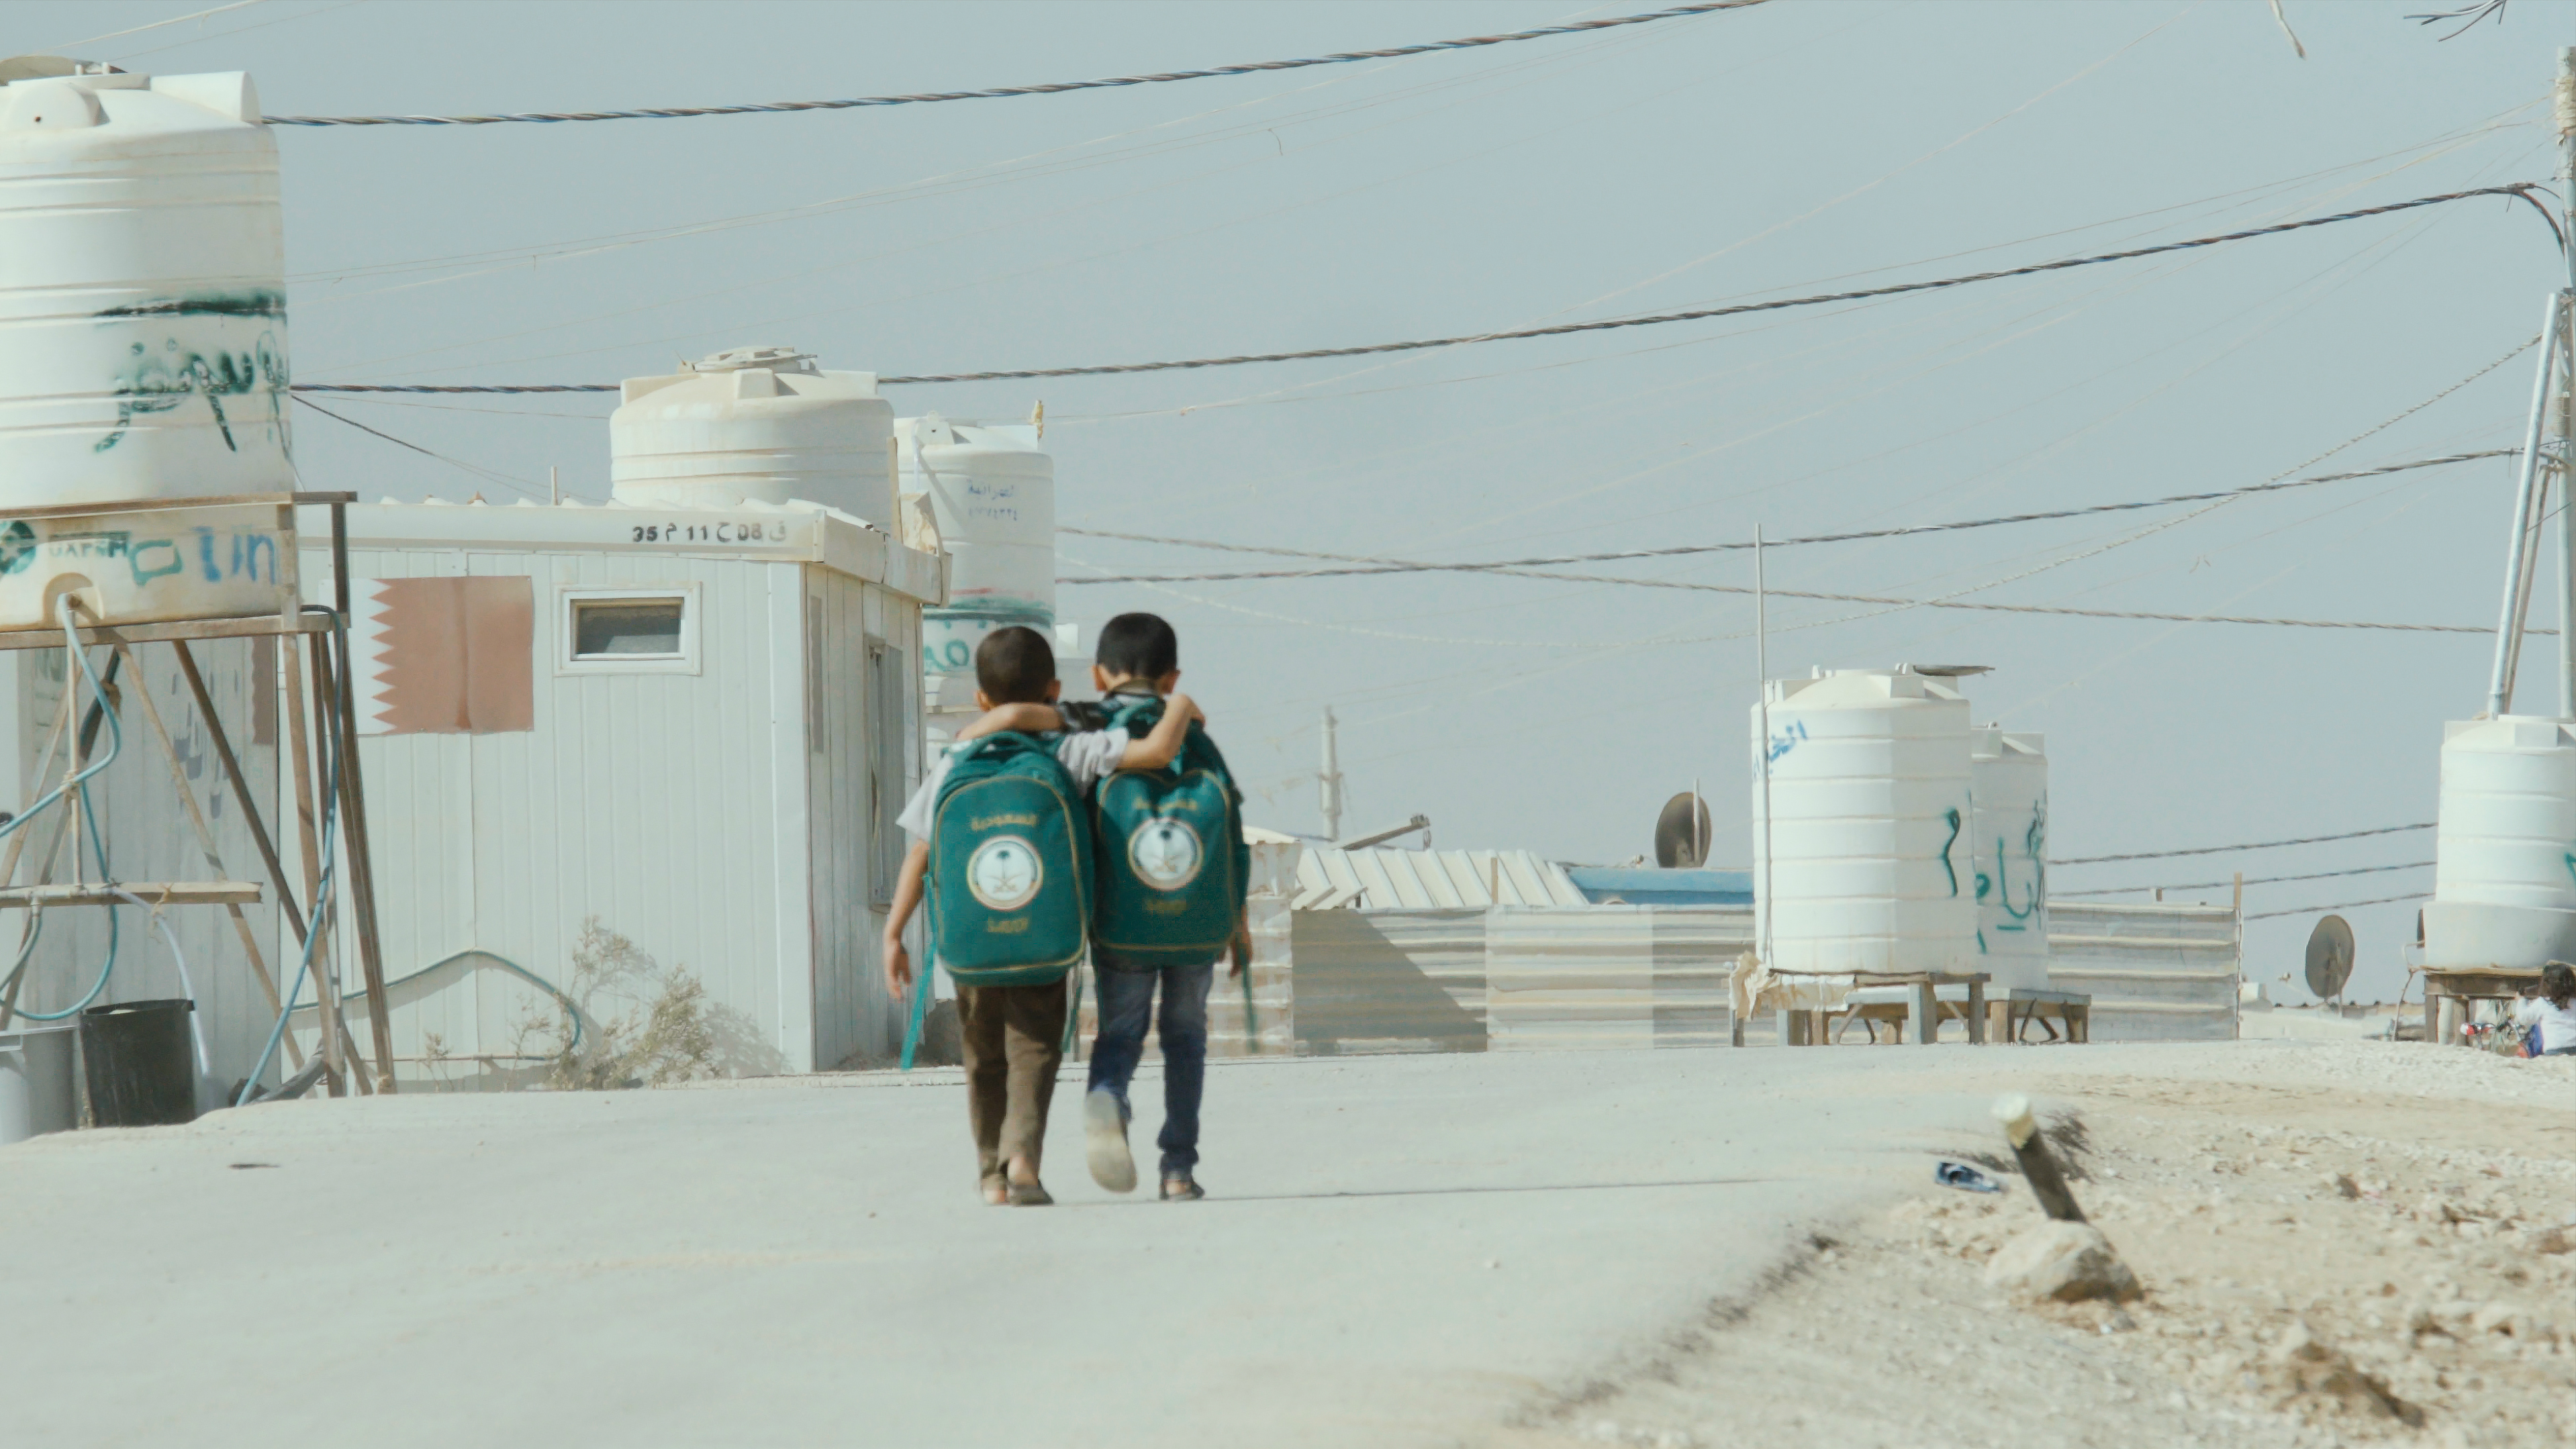 Two boys walking to/from school in a refugee camp